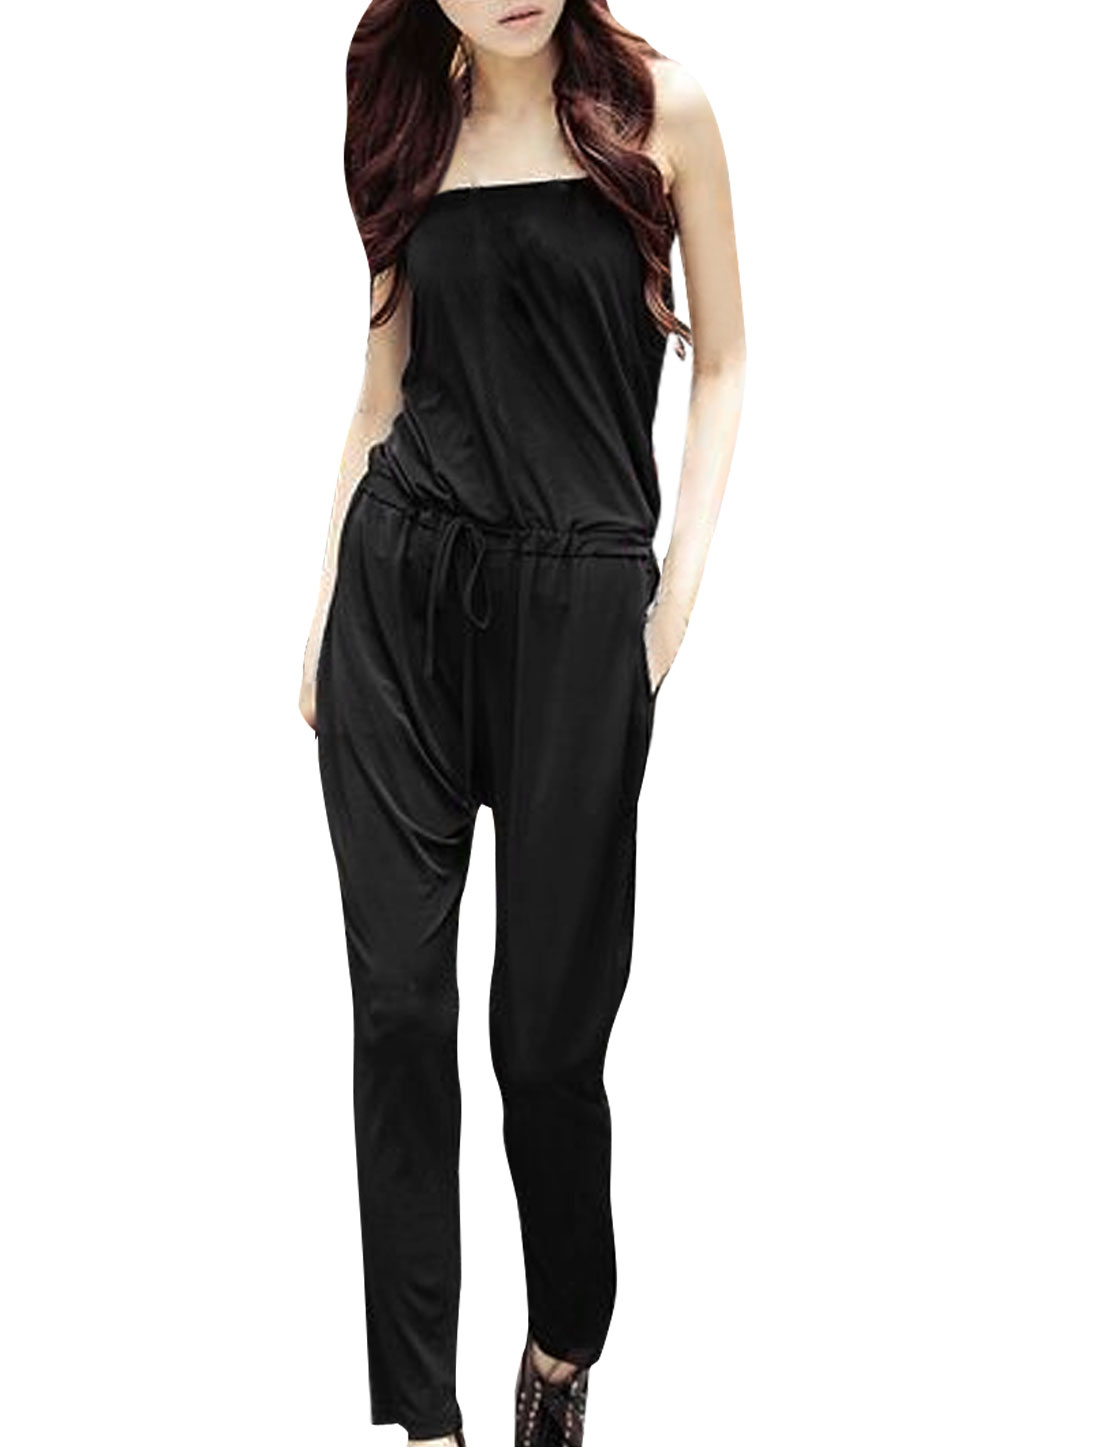 8888 Women Strapless Drawstring Waist Black Jumpsuit M